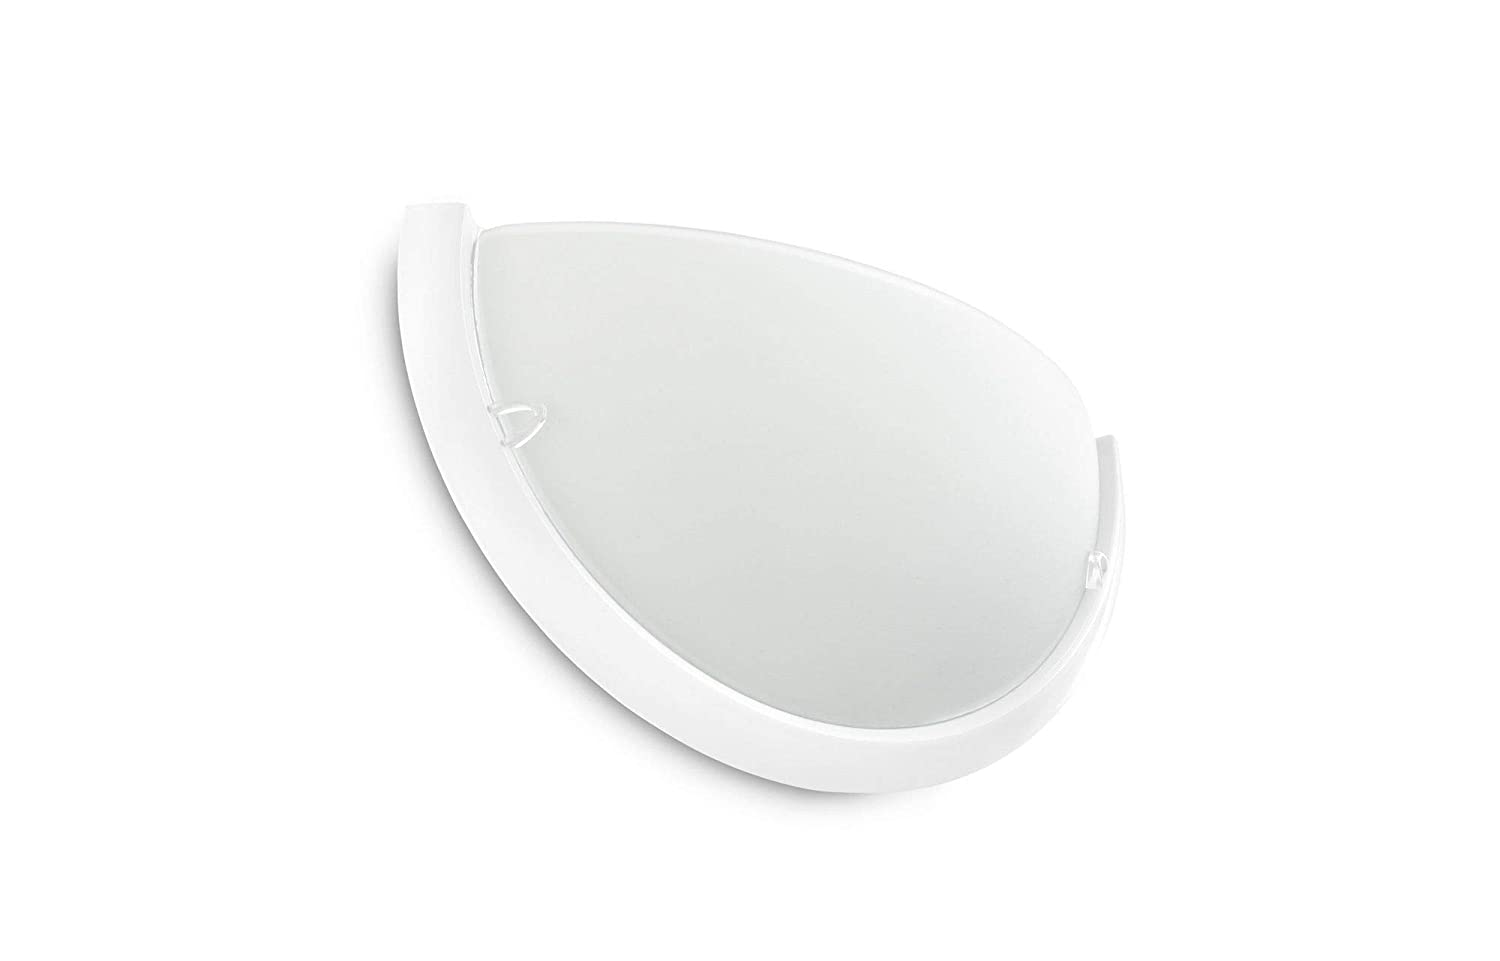 1 bombilla s L/ámpara Philips myLiving Circle white Wall light , E27, IP20, Blanco